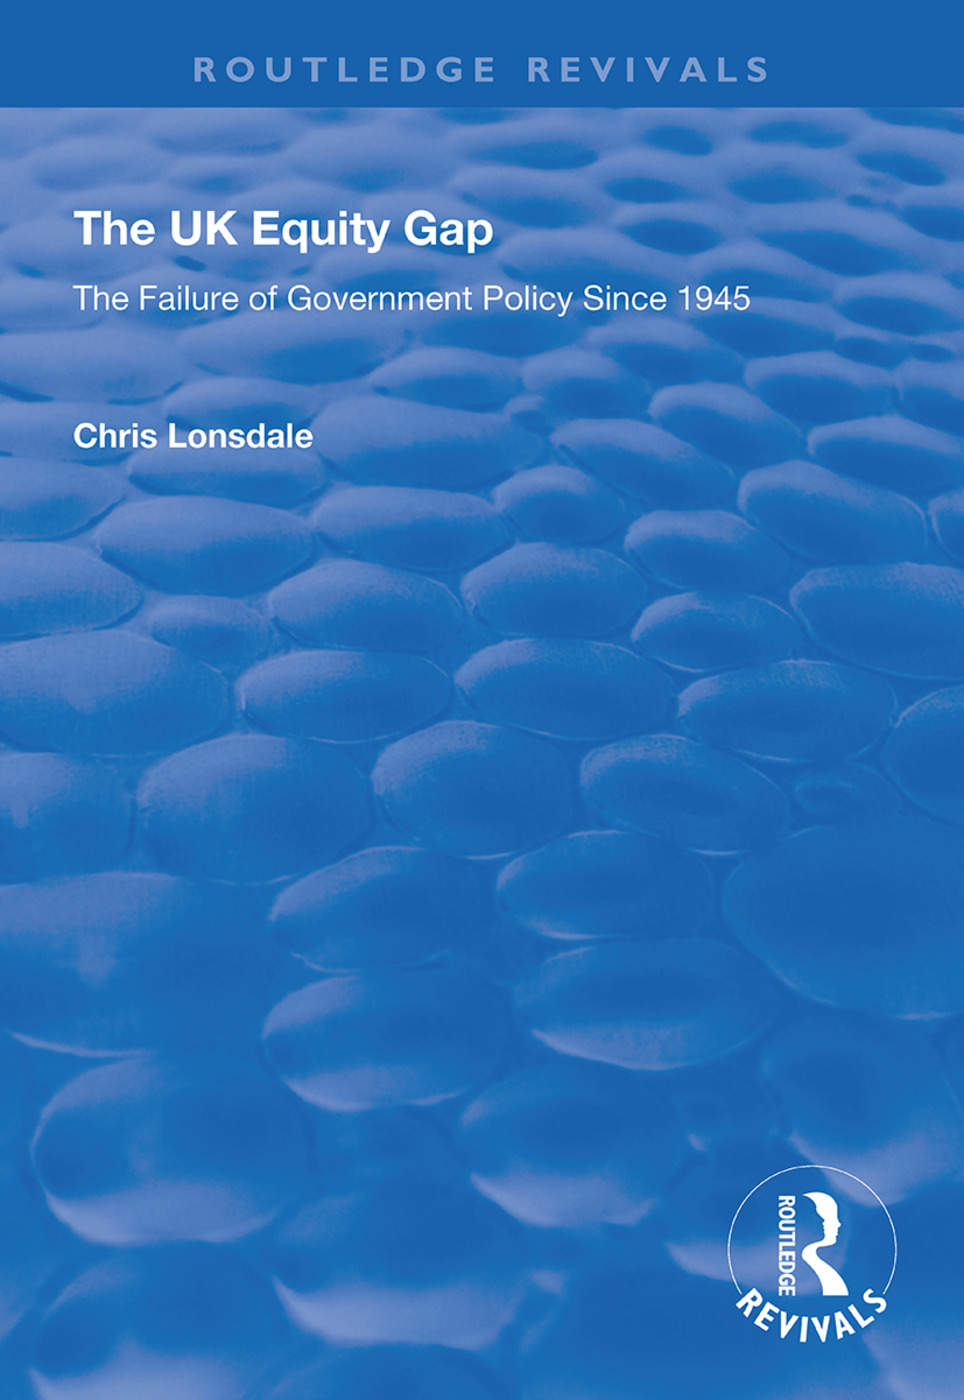 The UK Equity Gap: The Failure of Government Policy Since 1945 book cover